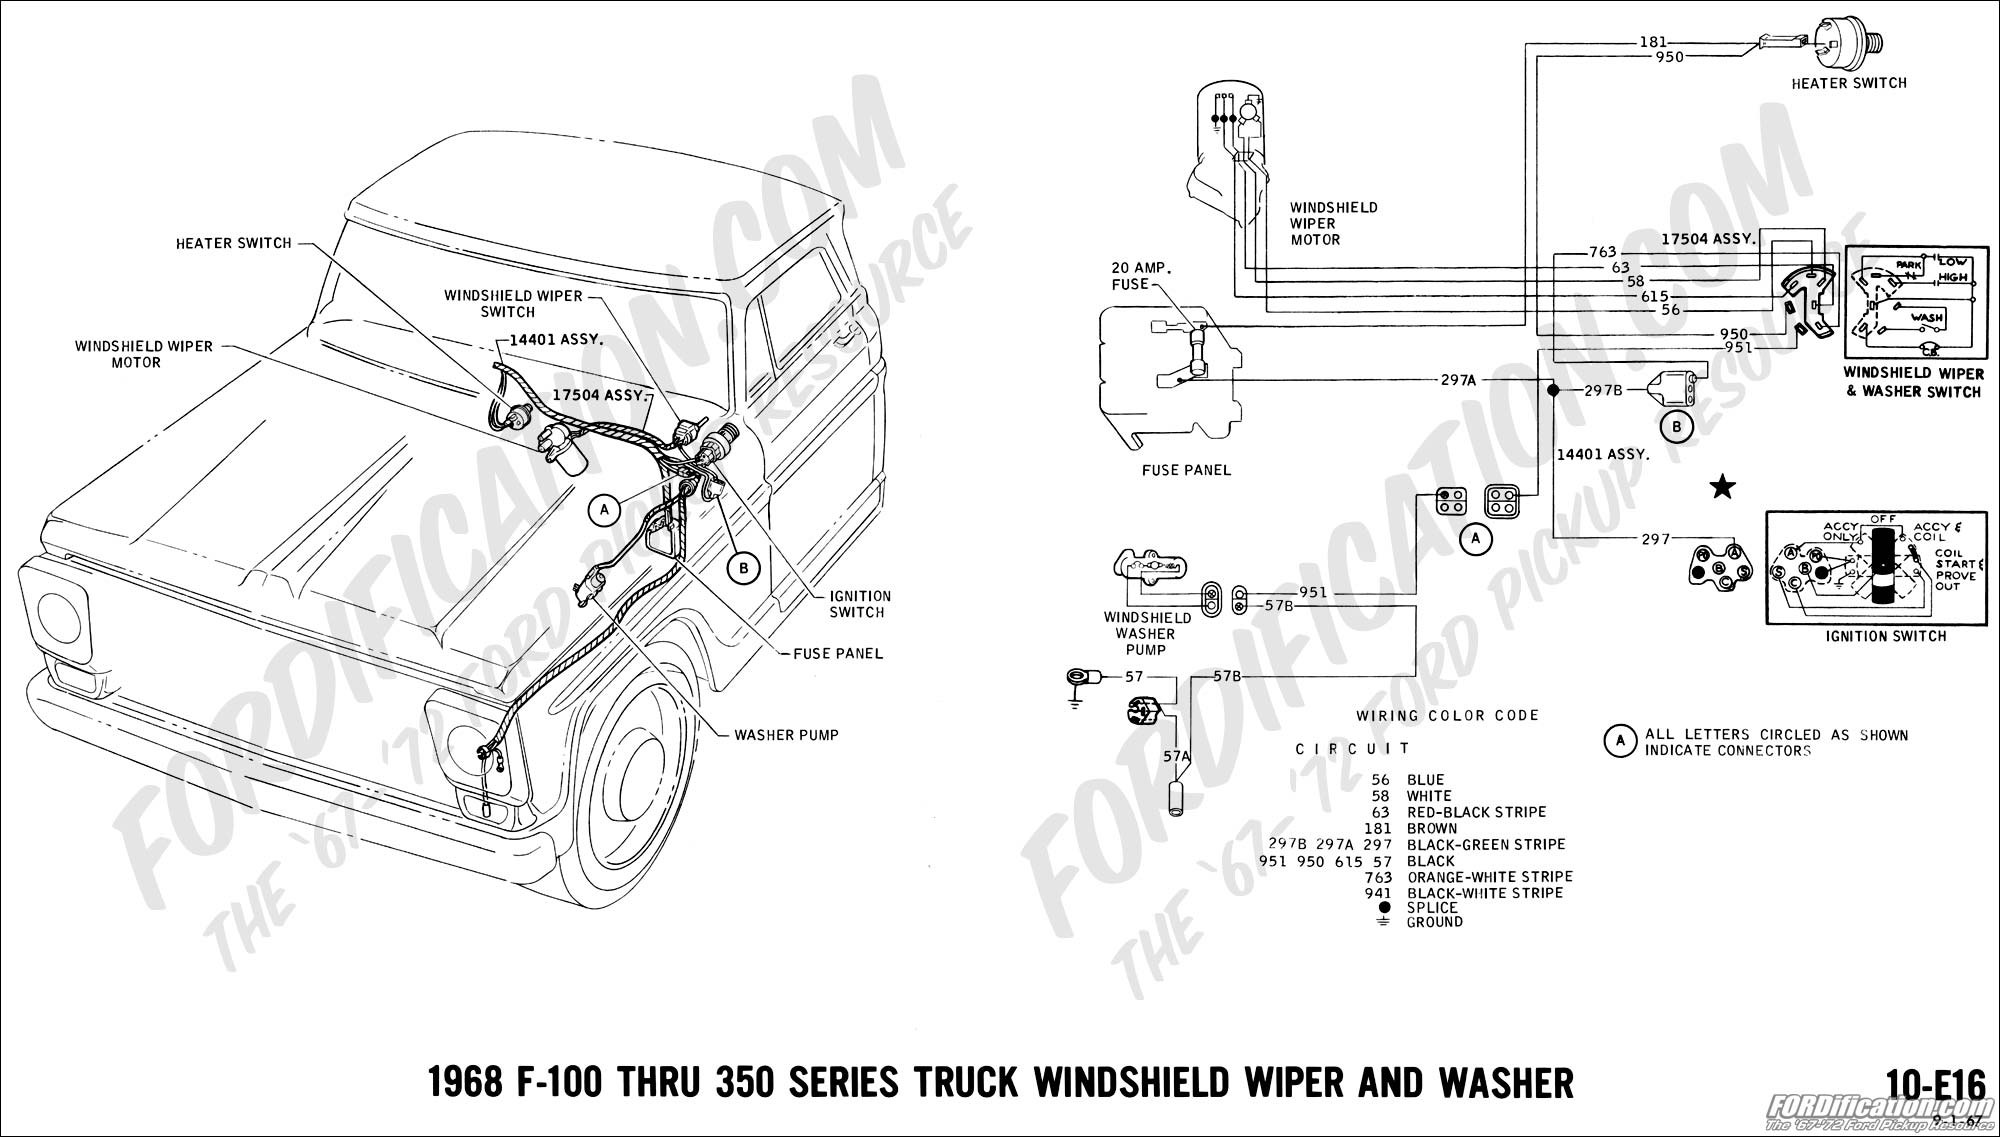 vw golf mk4 fuse box stereo with 1968 Ford F100 Wiper Switch Wiring Diagram on 2004 Volkswagen Golf Stereo Wiring Diagram furthermore Wiring Diagram For 2003 Dodge Ram 1500 together with Vw Polo 1 4 Tdi Wiring Diagram as well Vw Jetta Mk1 Wiring Diagrams Wiring Diagrams together with 1968 Ford F100 Wiper Switch Wiring Diagram.